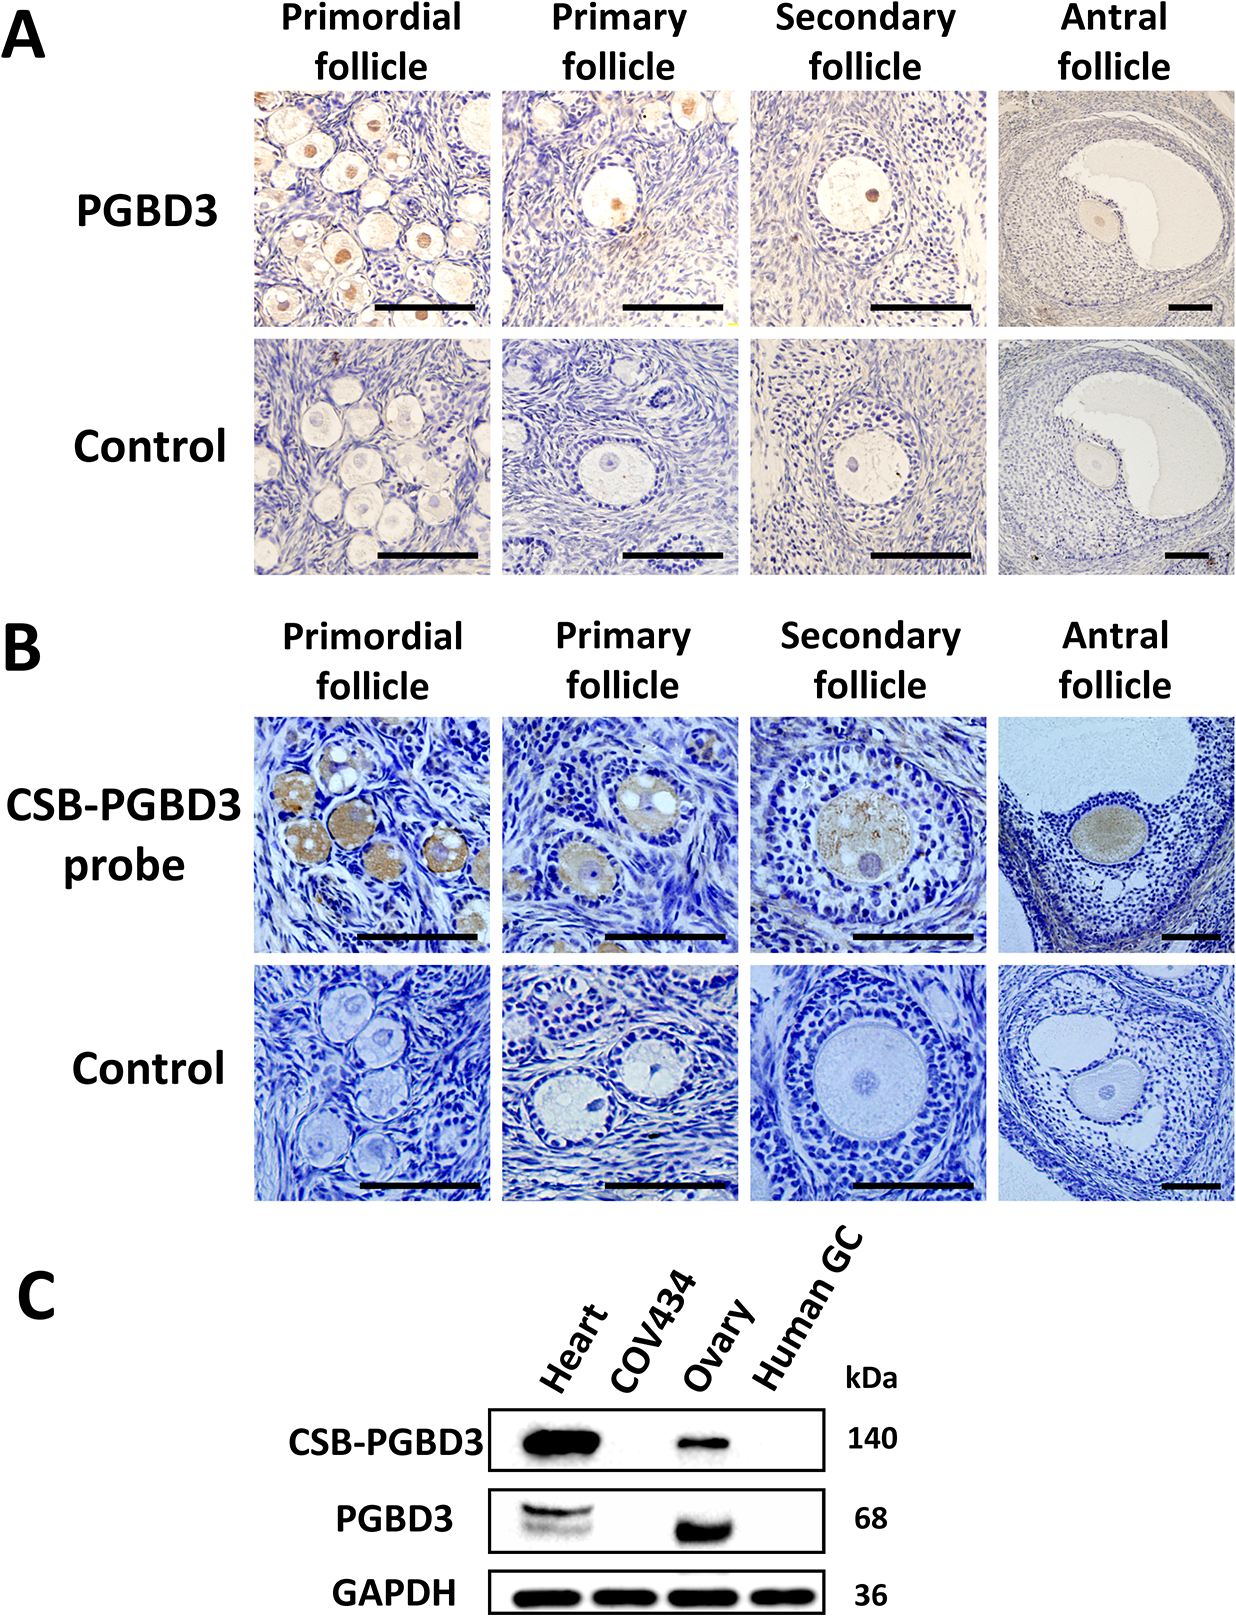 The cellular localization of PGBD3 and CSB-PGBD3.